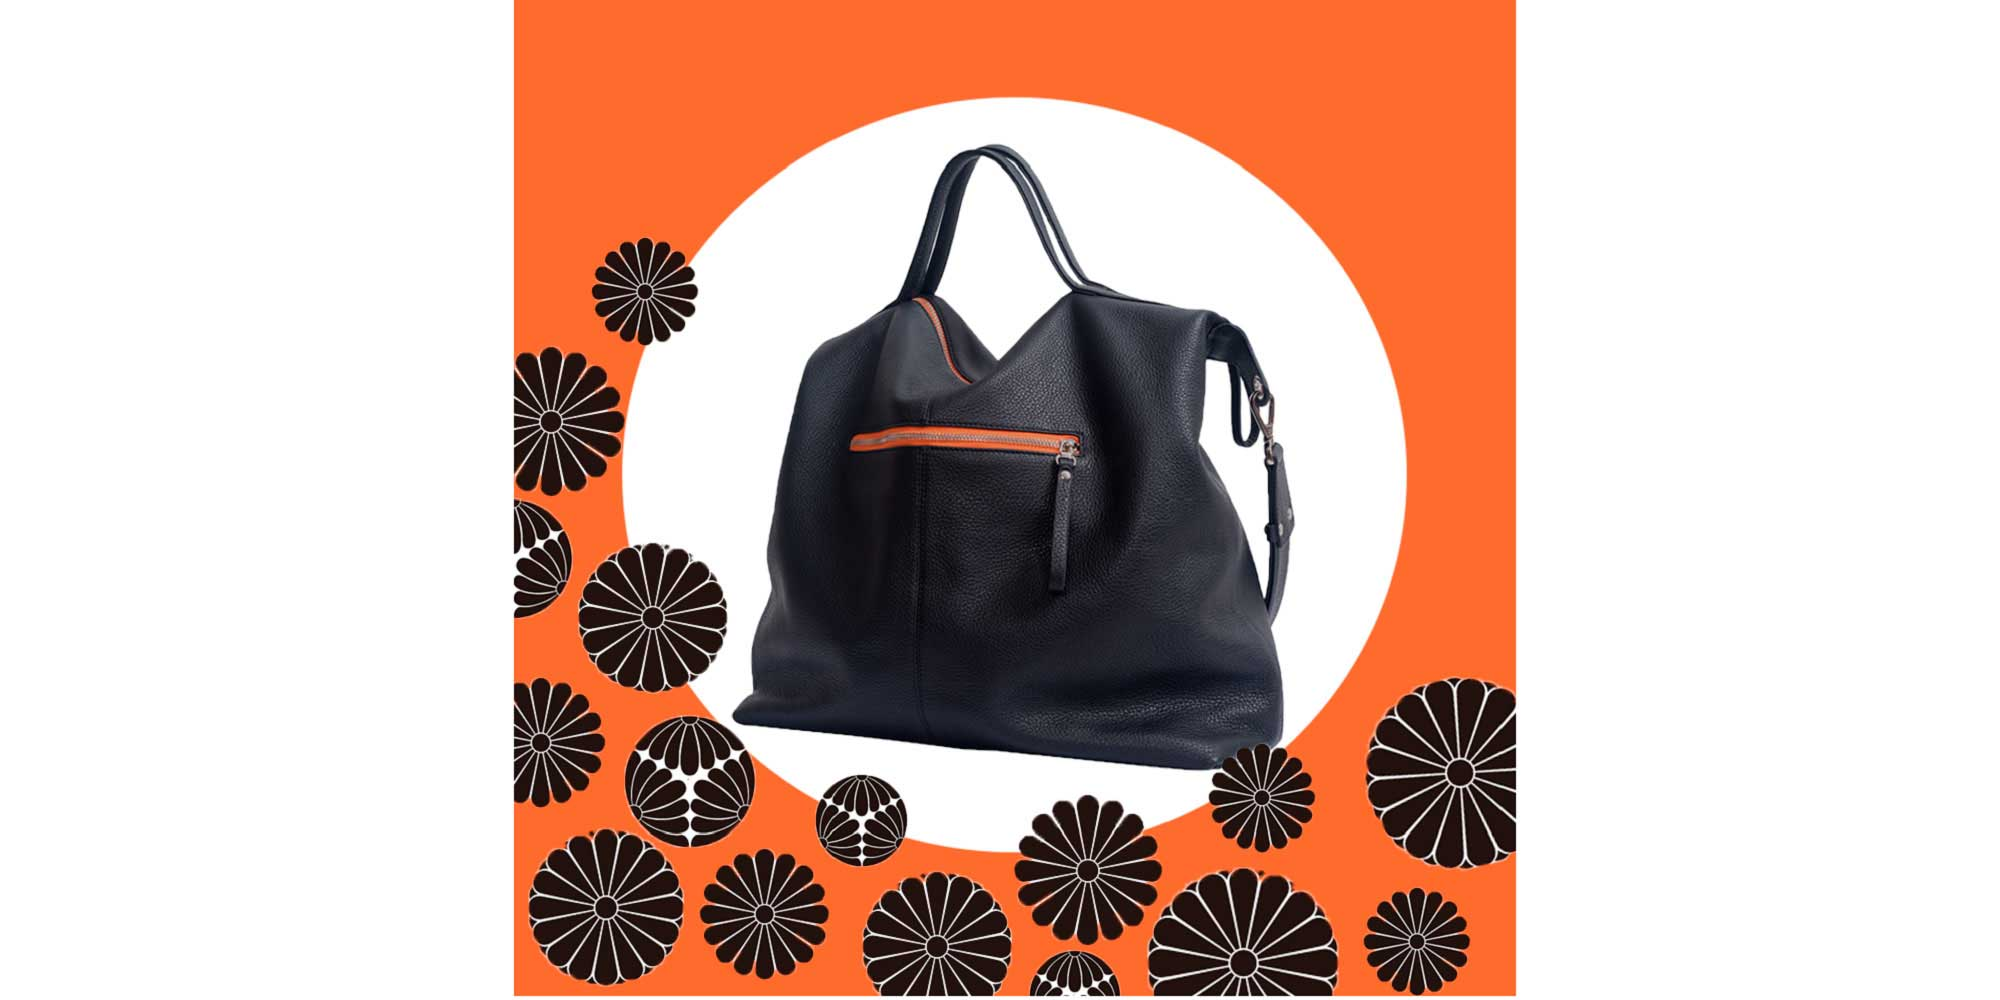 New featured Baggu Bag collection